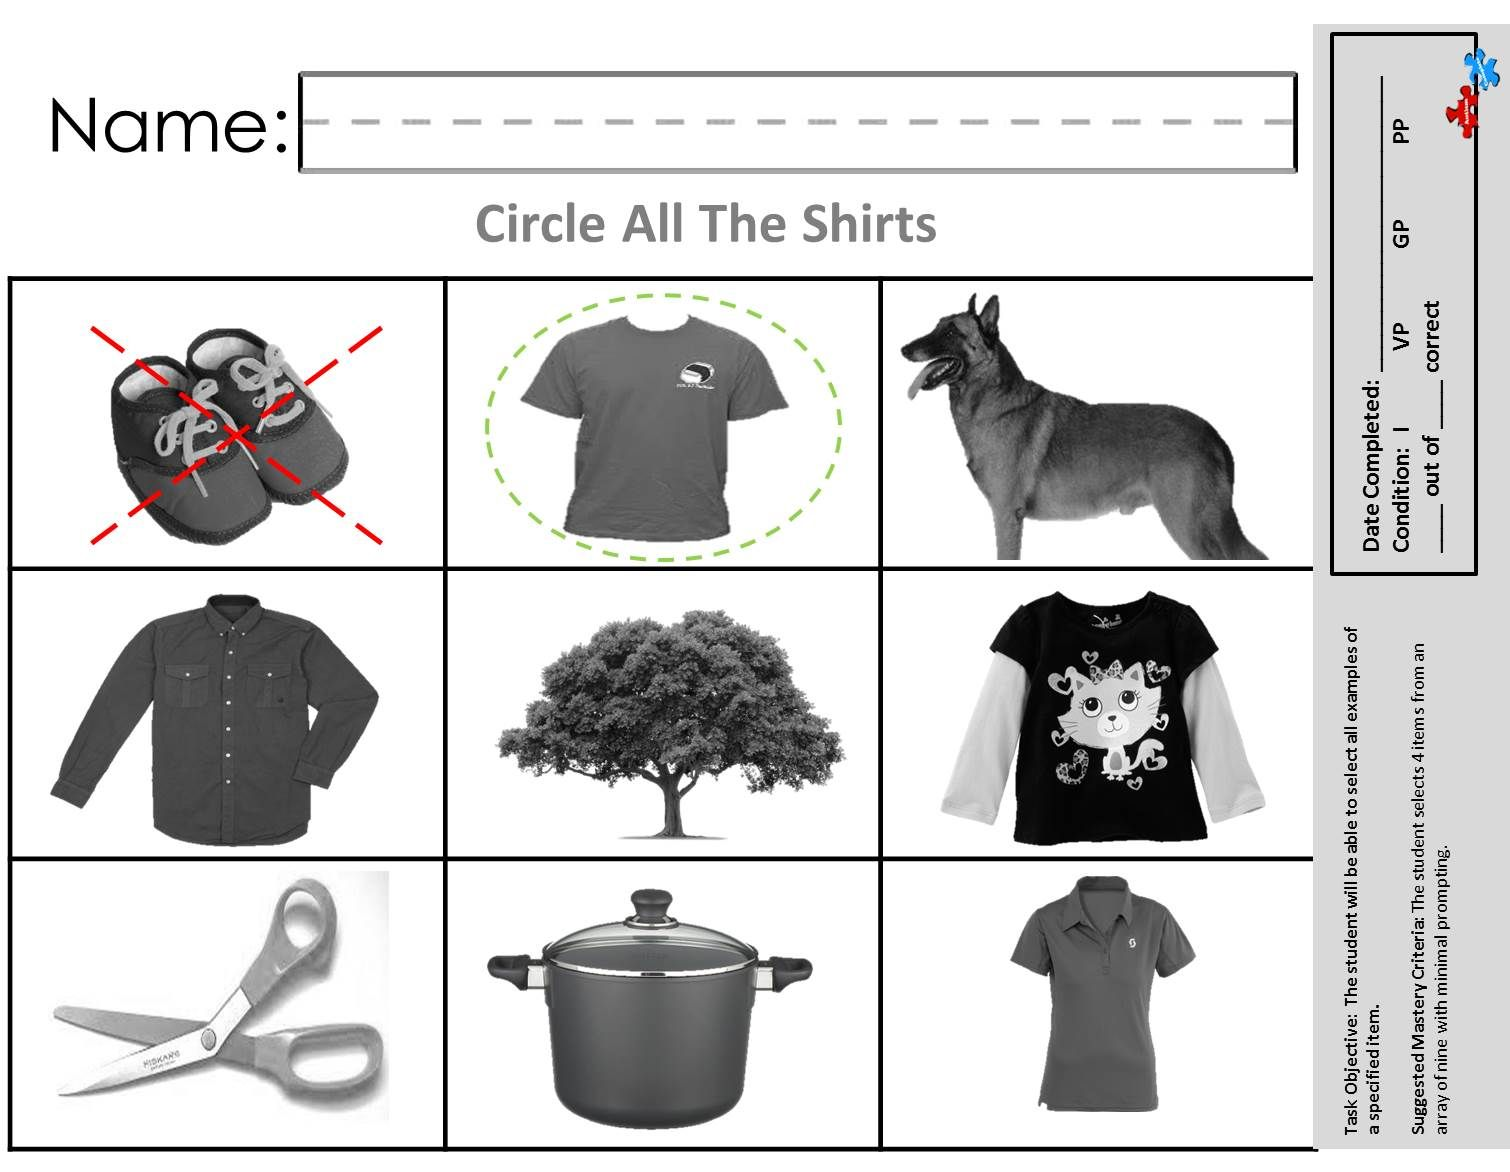 Select Examples Of An Object Available At Autismcomplete